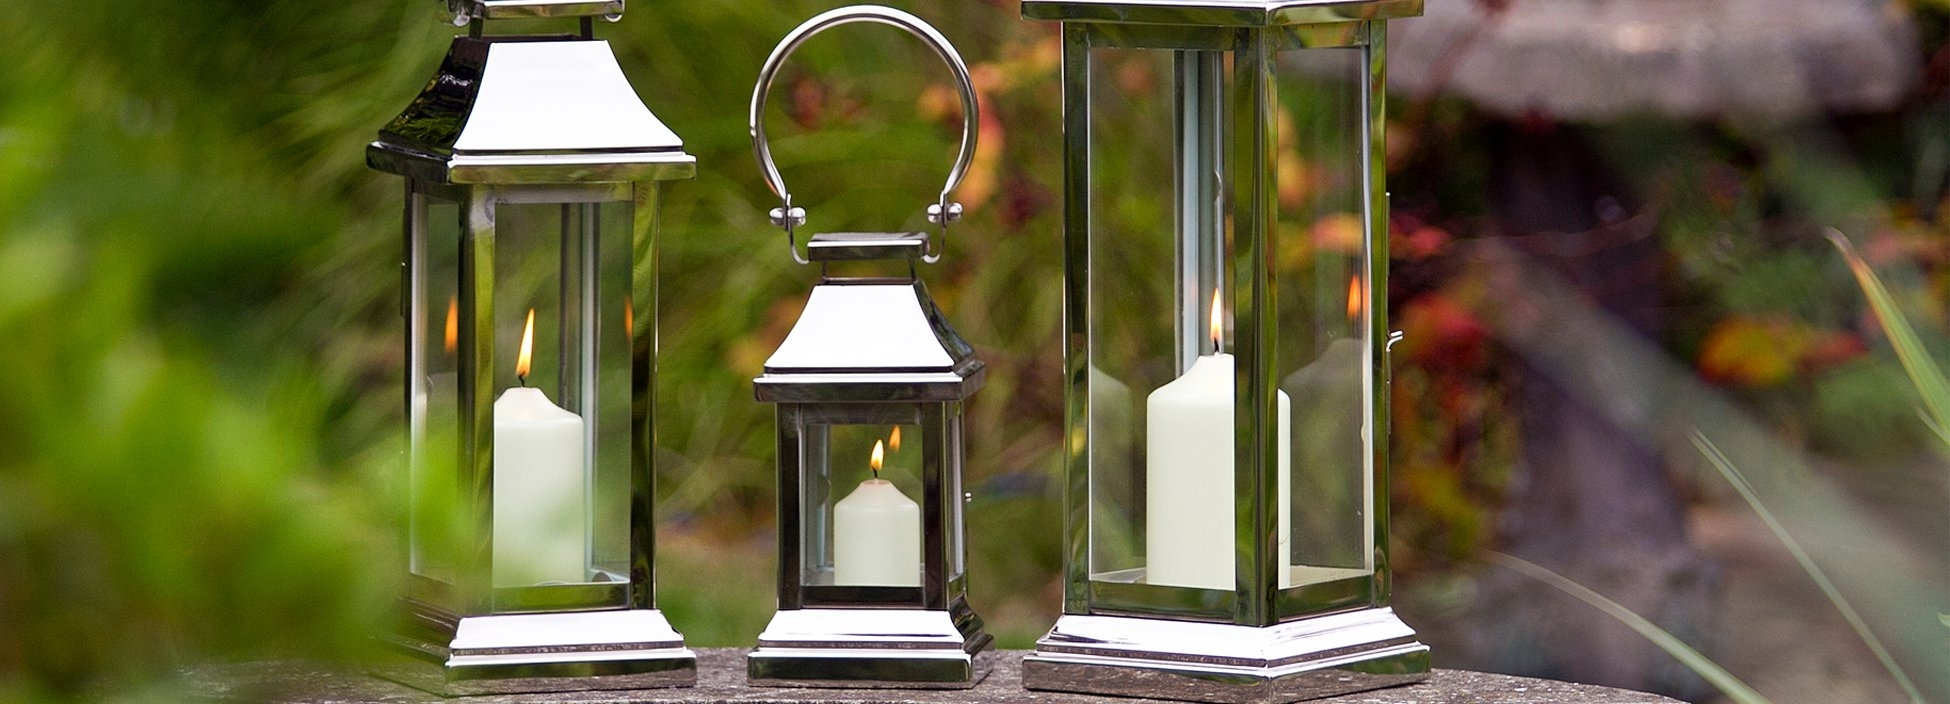 Indoor Candle Lanterns & Garden Lanterns | Culinary Concepts inside Outdoor Lanterns With Candles (Image 8 of 20)